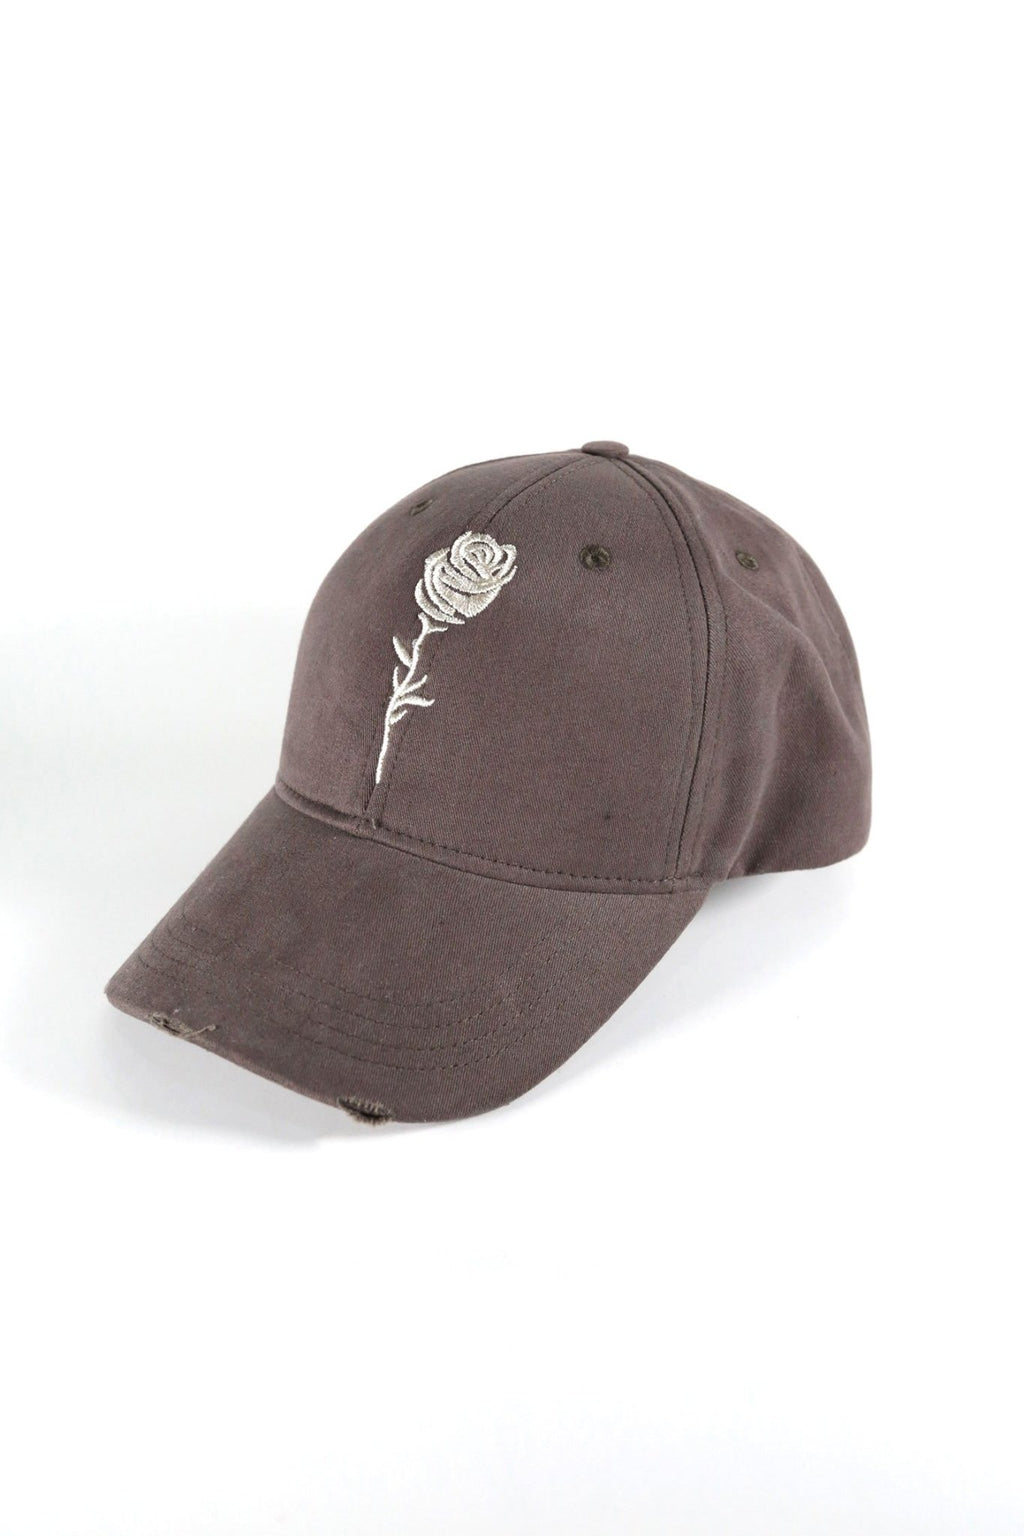 Rose London Mesh Back Distressed Rose LA Cap in Khaki - Rose London